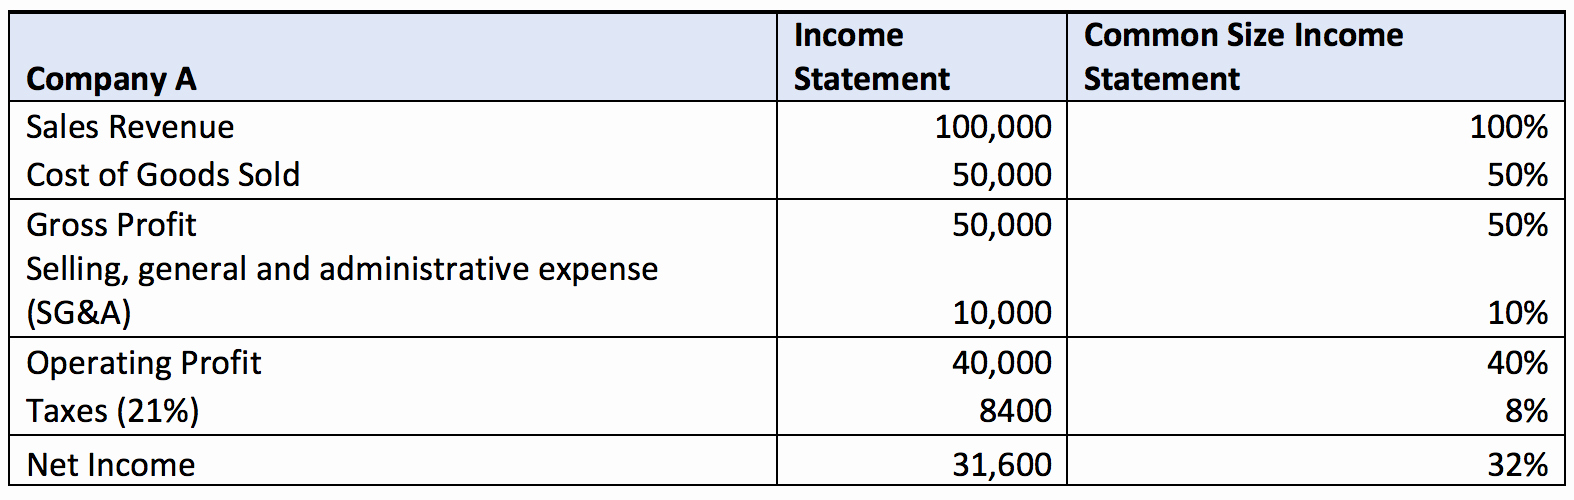 Common Size Income Statement Template Luxury Quarterly In E Statement Template Excel Spreadsheet